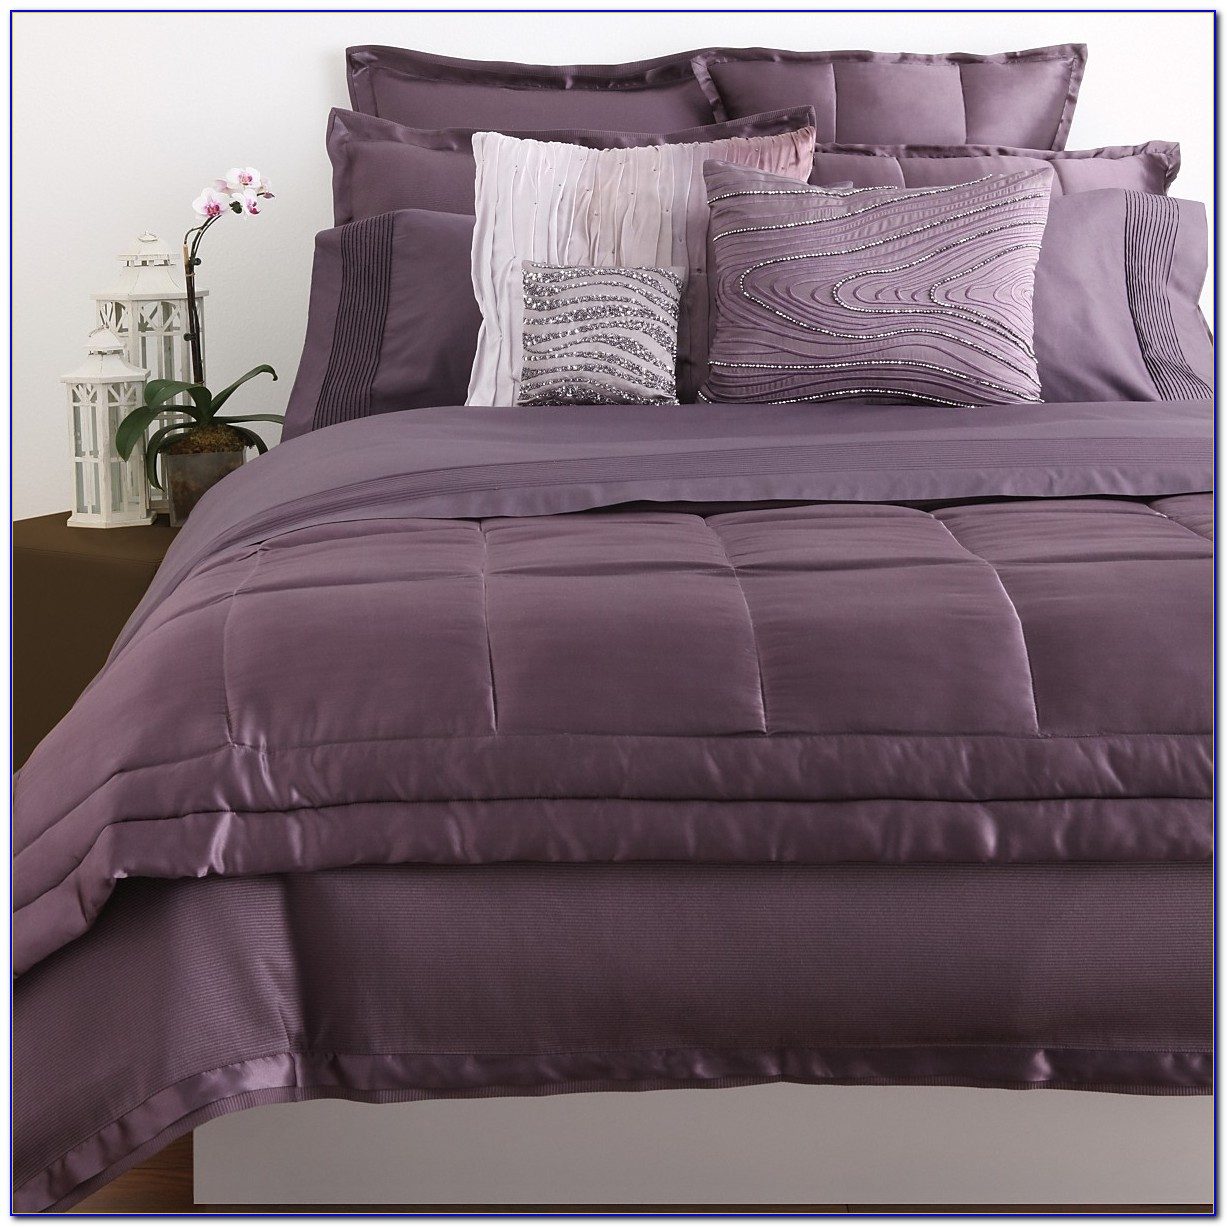 Classy donna karan bedding with Cushion and pillows also beautiful duvet cover and sidetable and luxury wall paint color